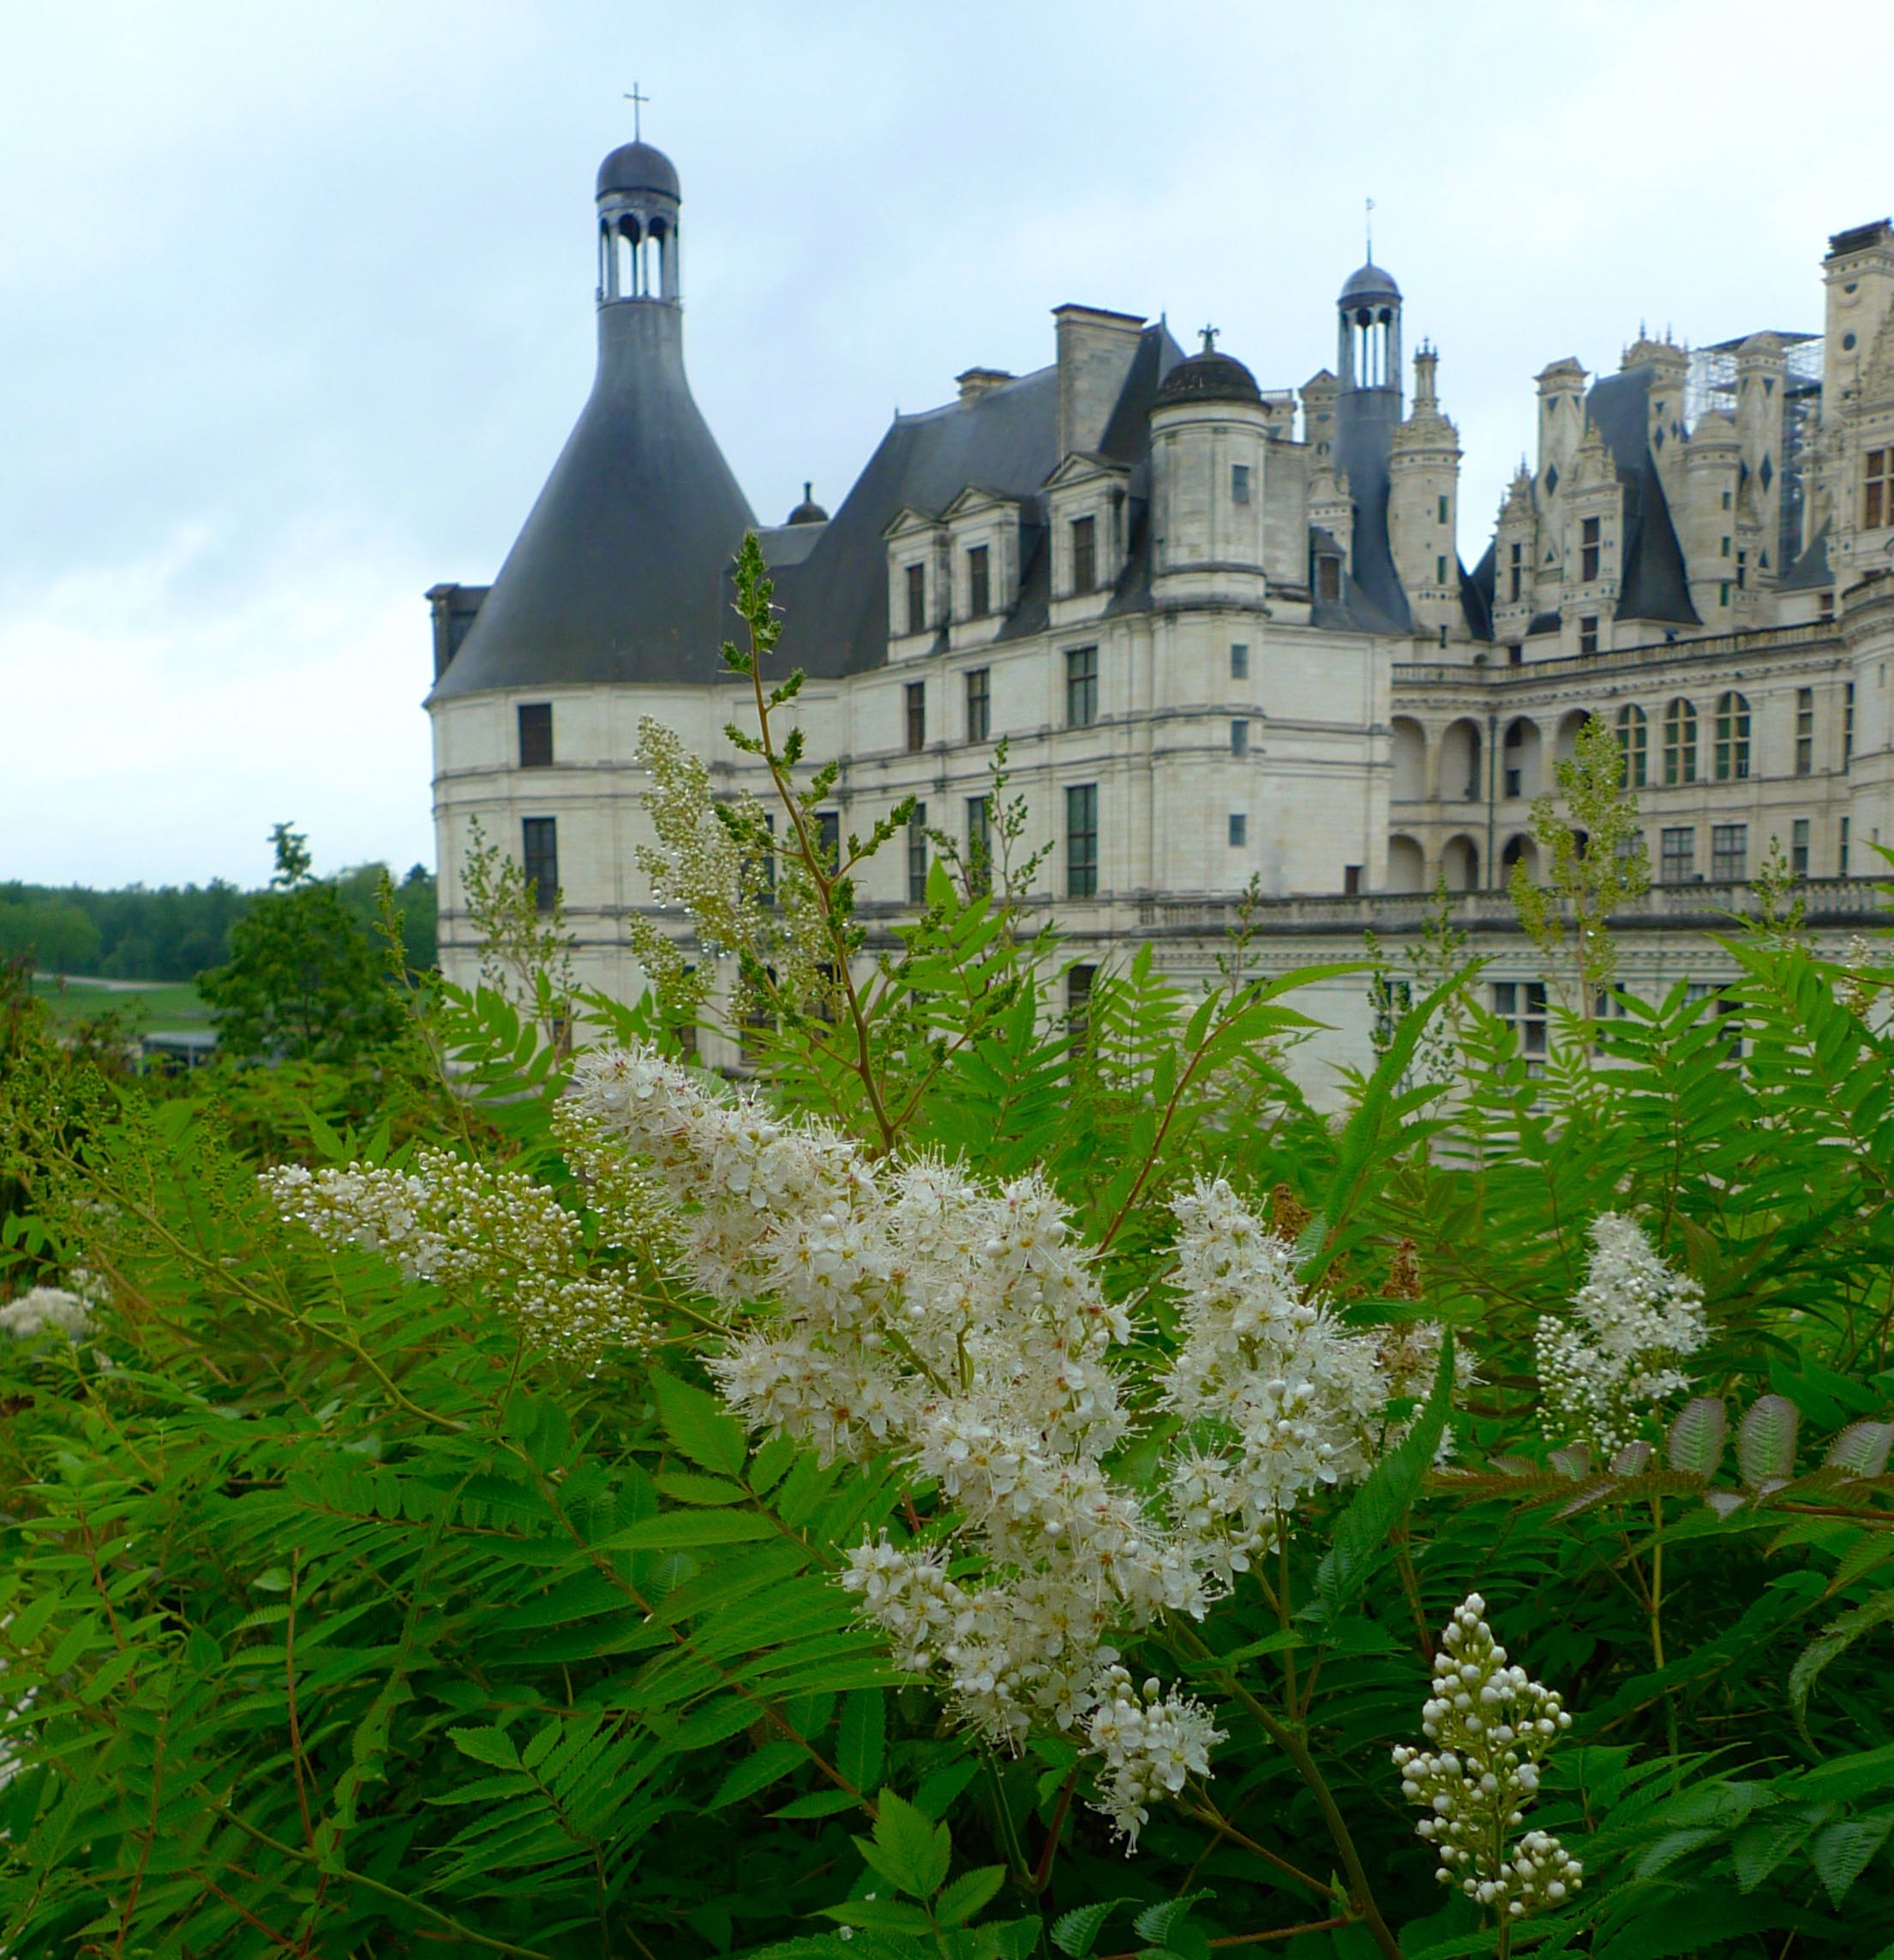 THE CHATEAU DE CHAMBORD FROM THE GARDENS